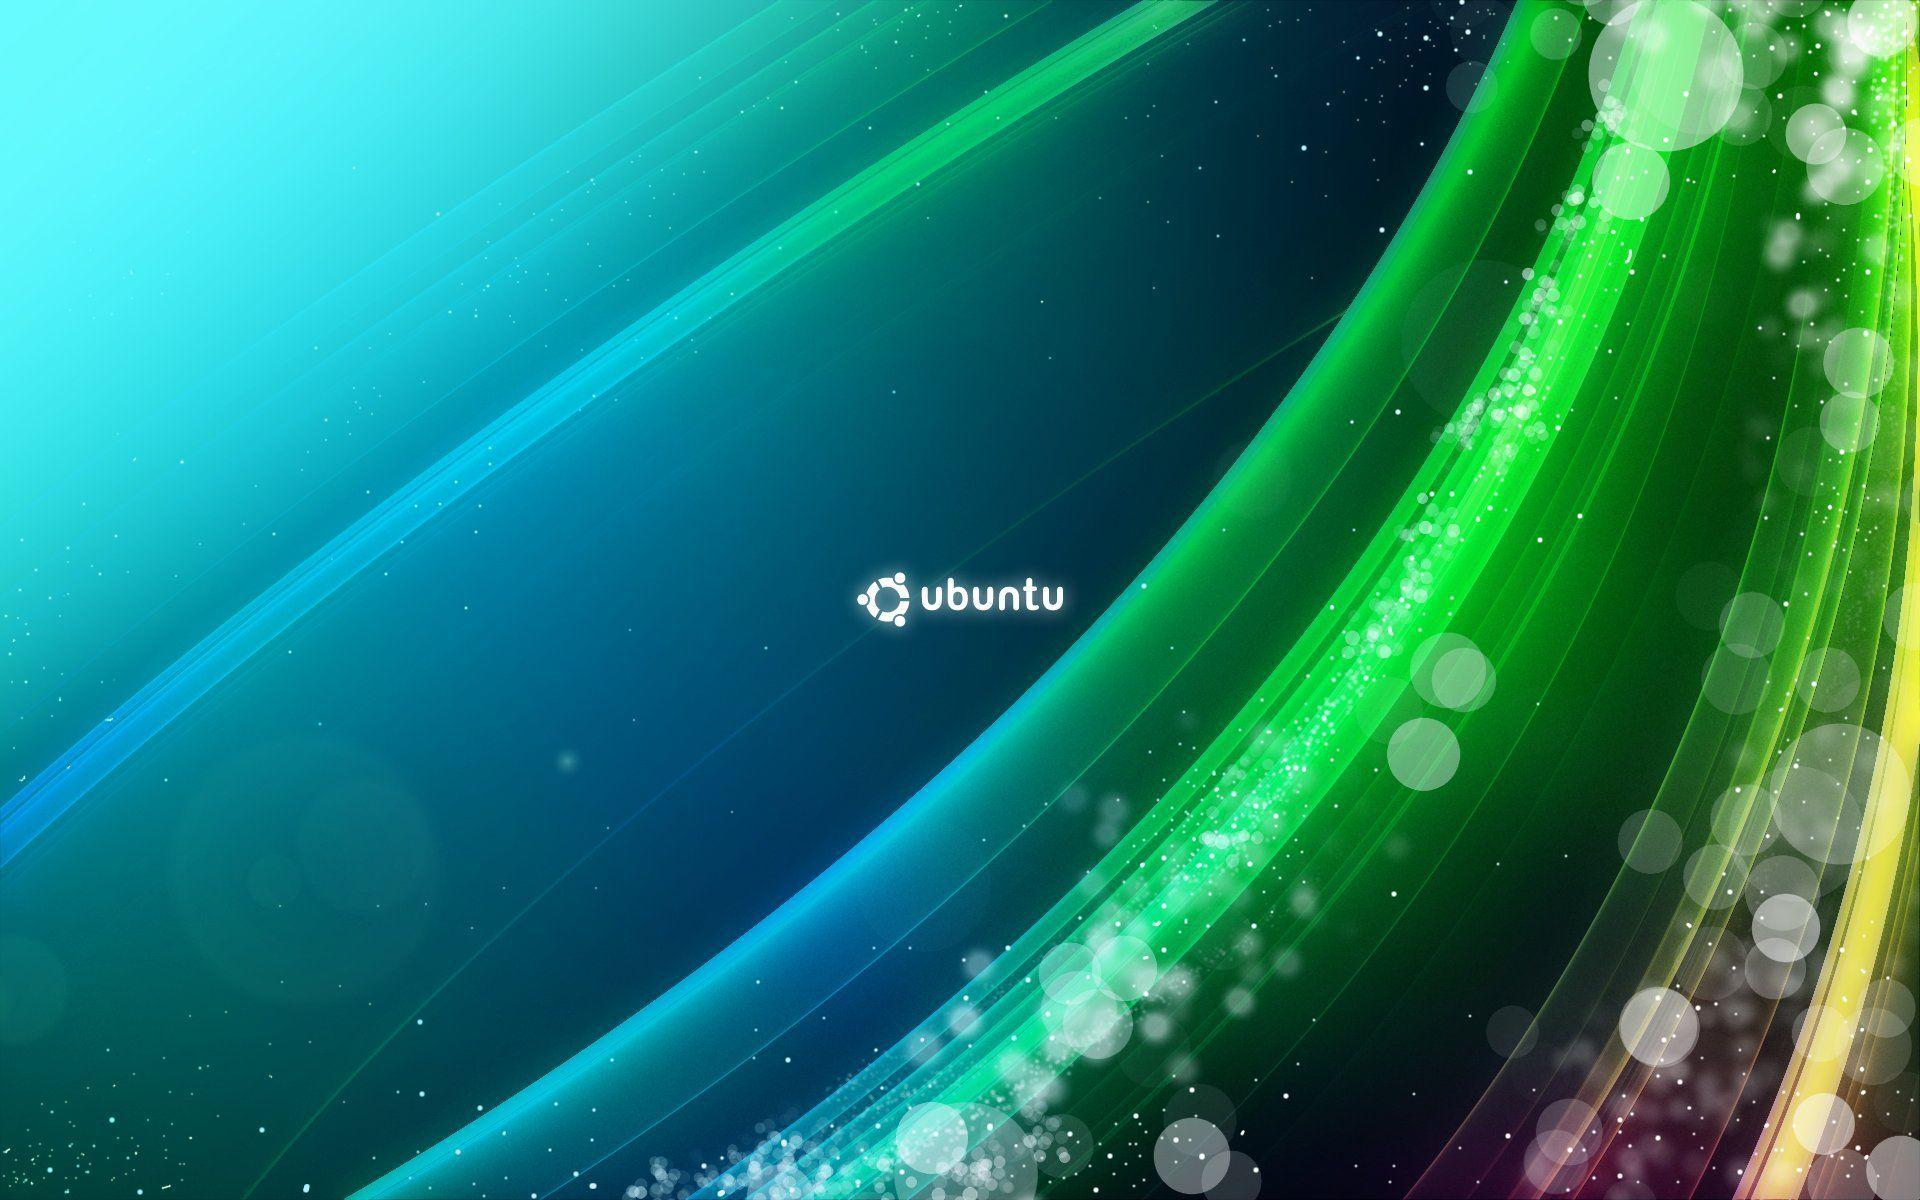 10 Cool Linux Wallpapers to Decorate Your Desktop